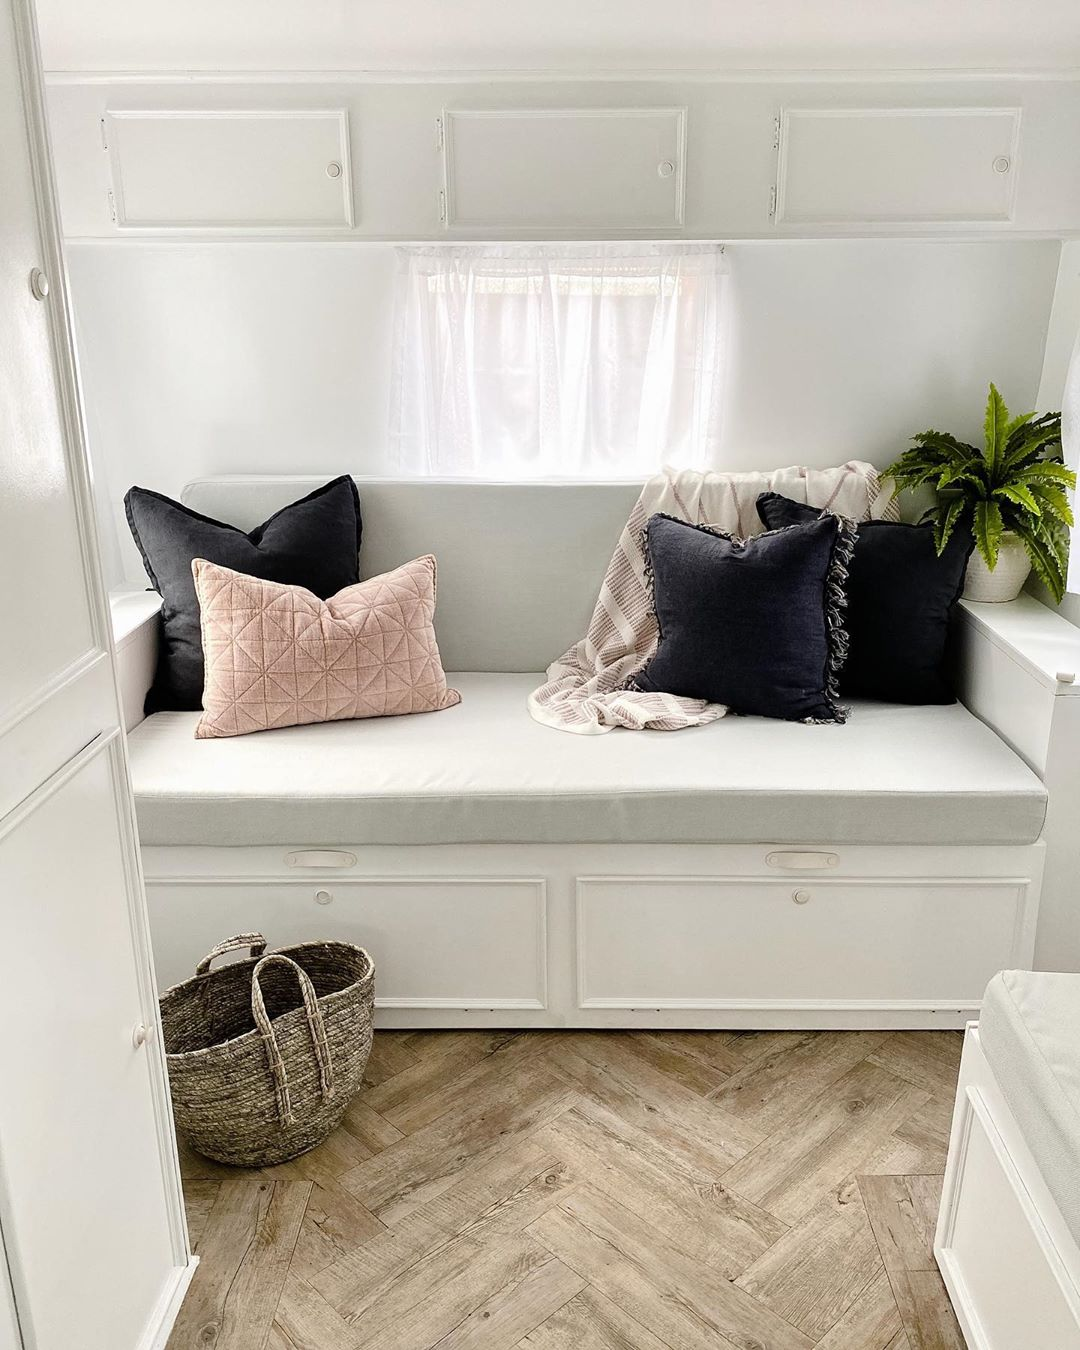 White sitting area with pink and navy blue cushions, in a renovated vintage caravan